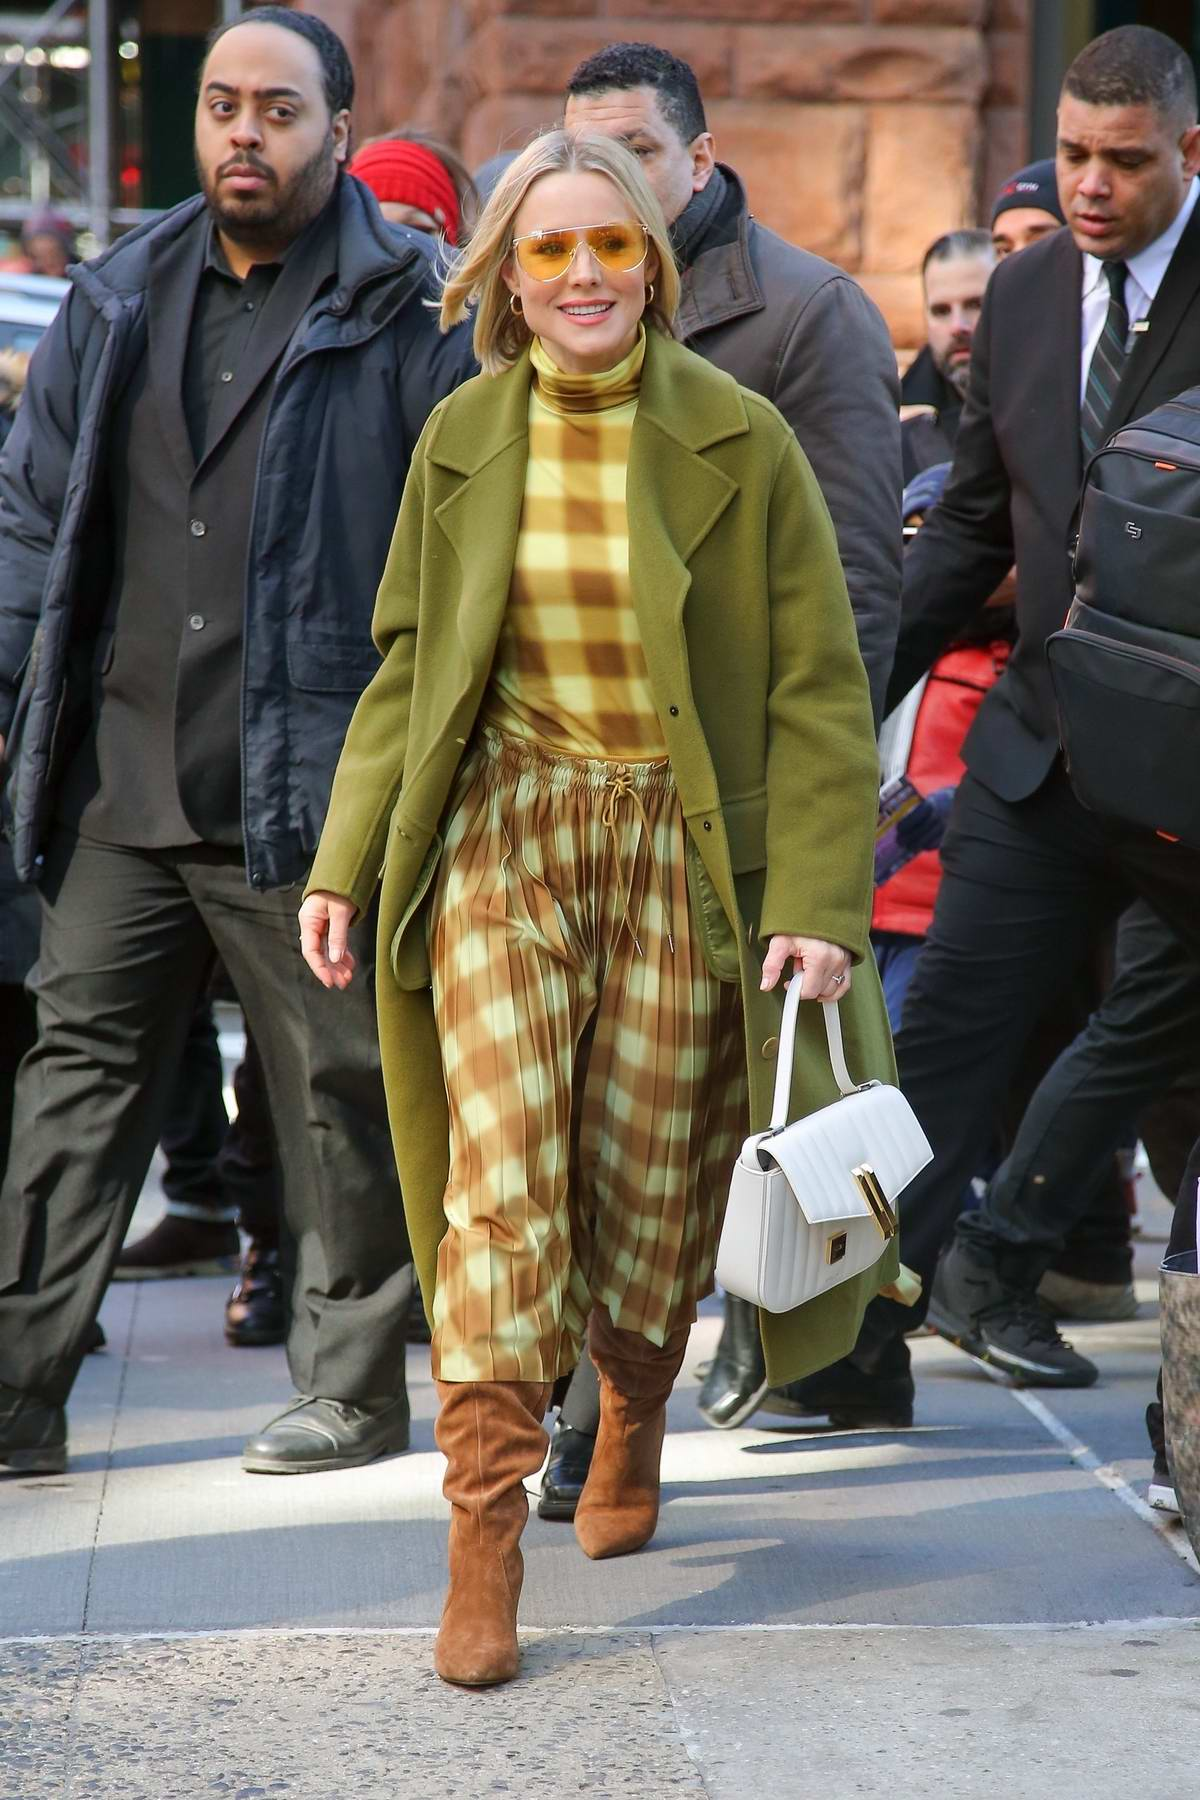 Kristen Bell dons plaid while promoting 'Hello Bello' in New York City